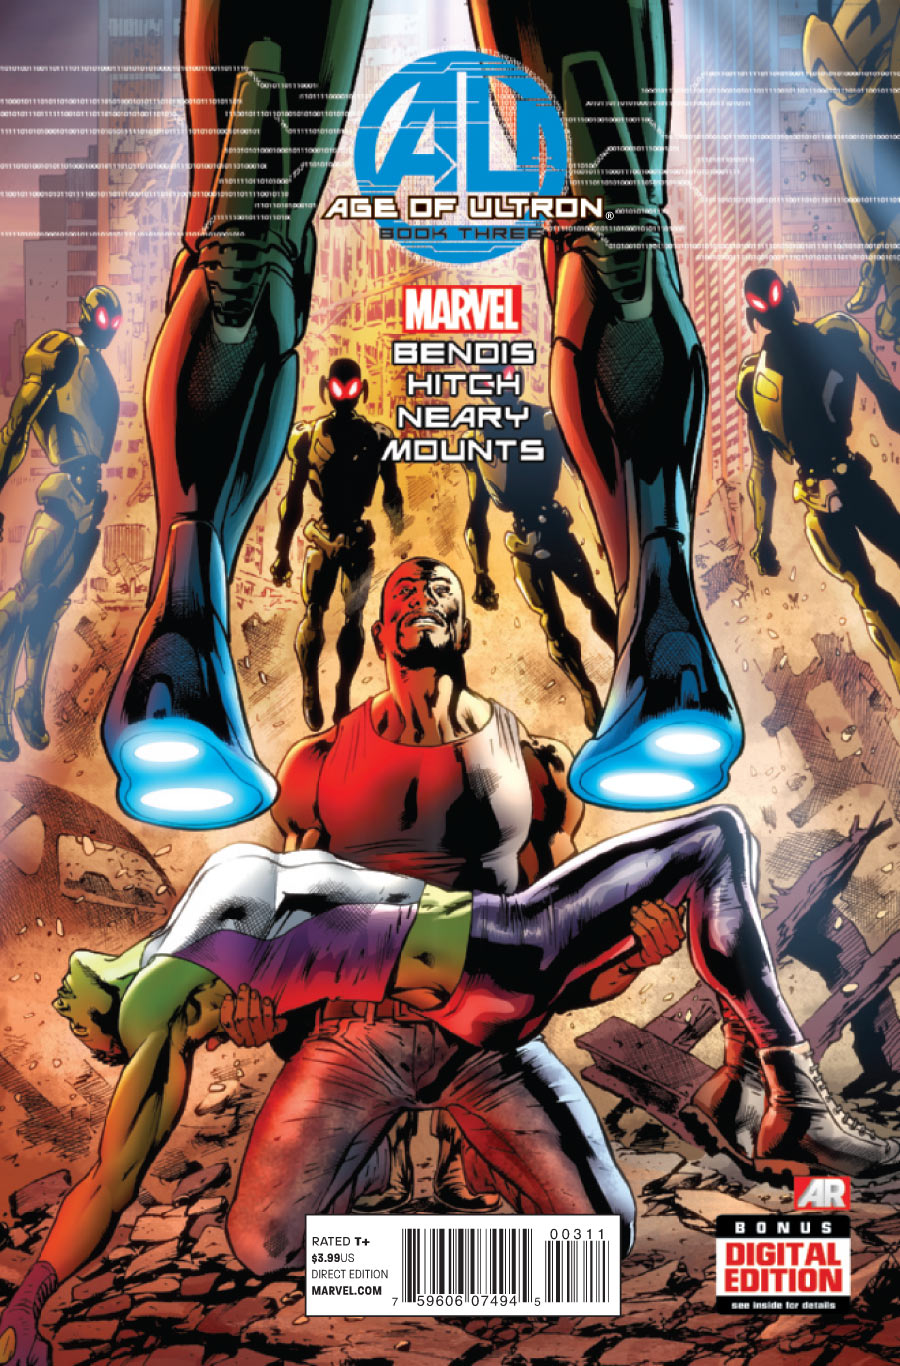 AGE OF ULTRON #3 (2013) VF/NM MARVEL